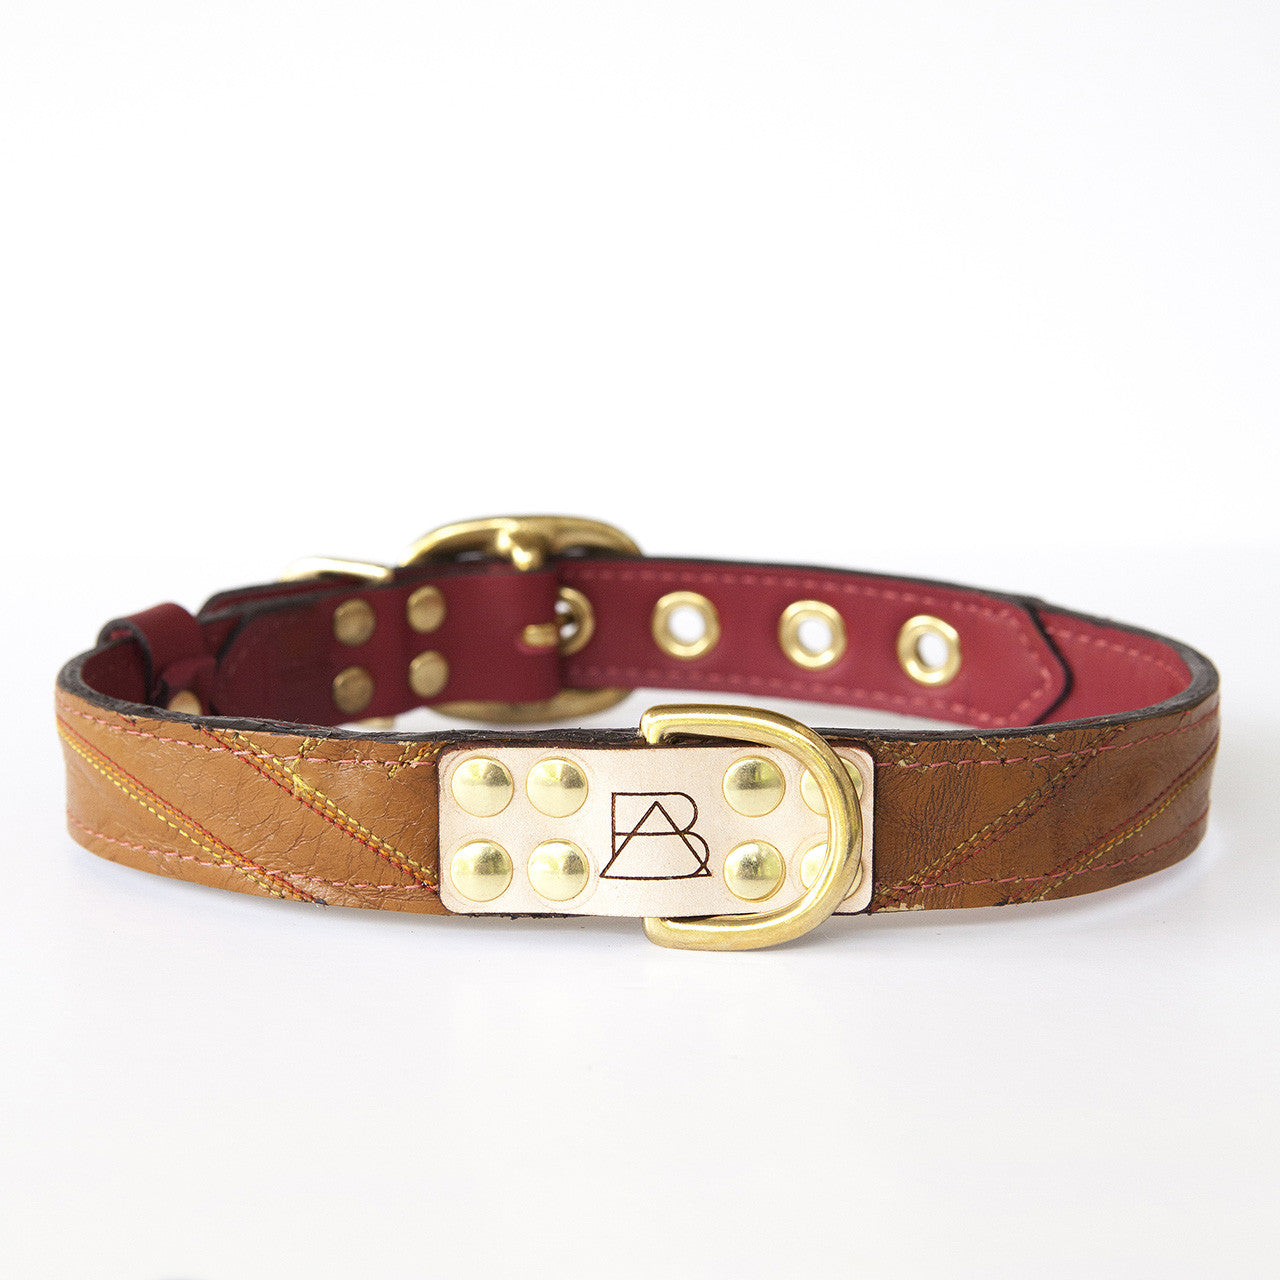 Ruby Red Dog Collar with Brown Leather + Multicolor Stitching (front view)